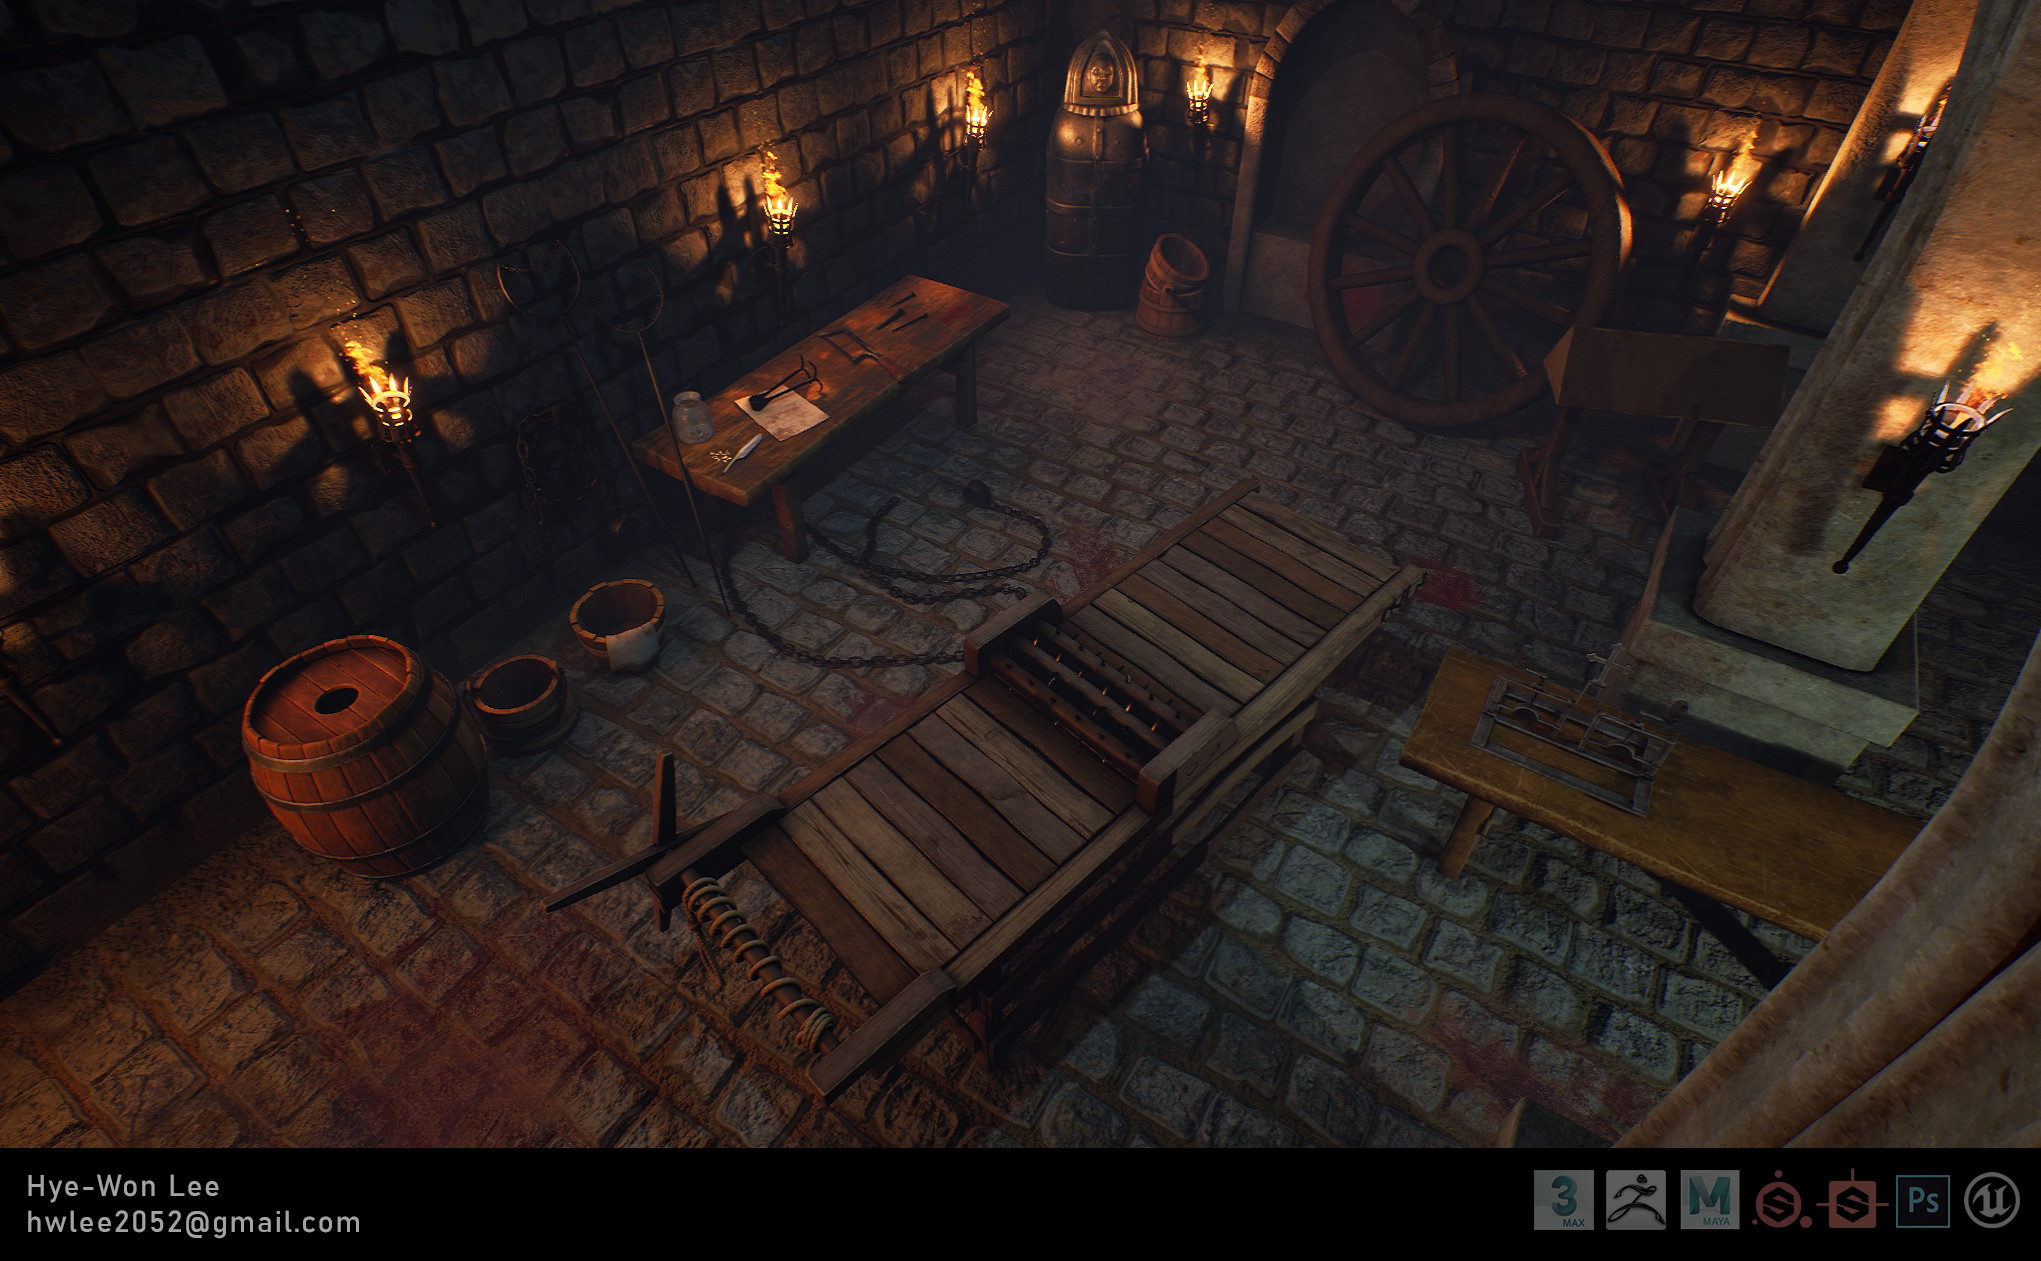 Overhead view. Floor and wall materials were created in Substance Designer